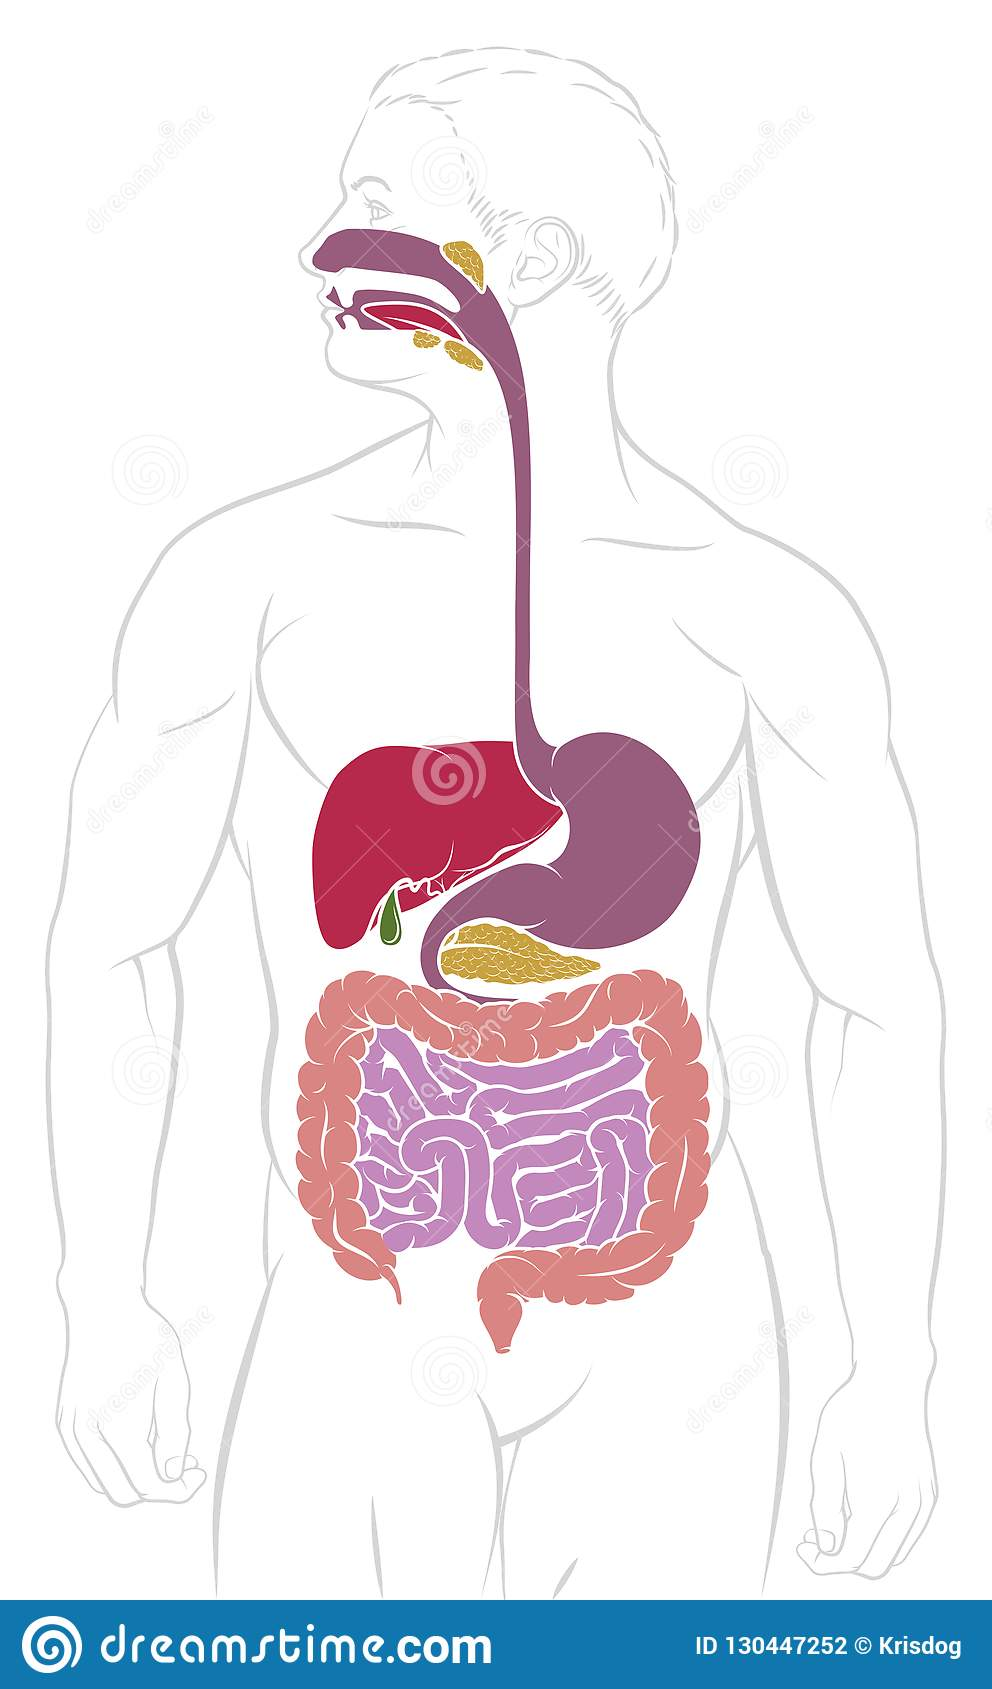 Digestive System Gastrointestinal Tract Diagram Stock Vector